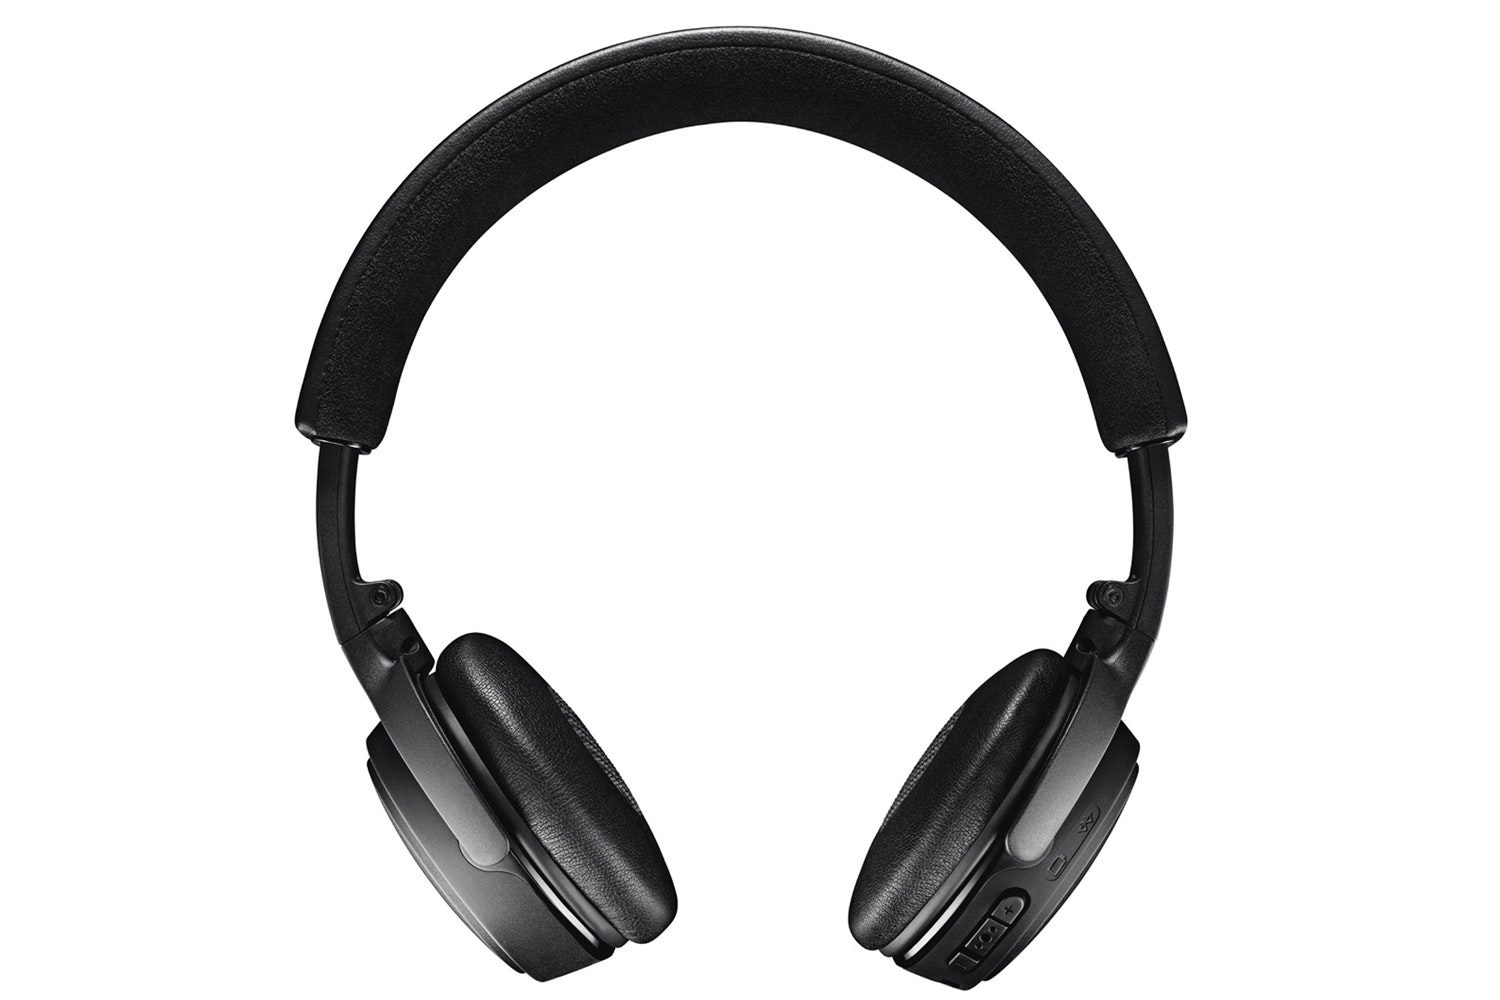 Bose SoundLink On-Ear Wireless Headphones | Black